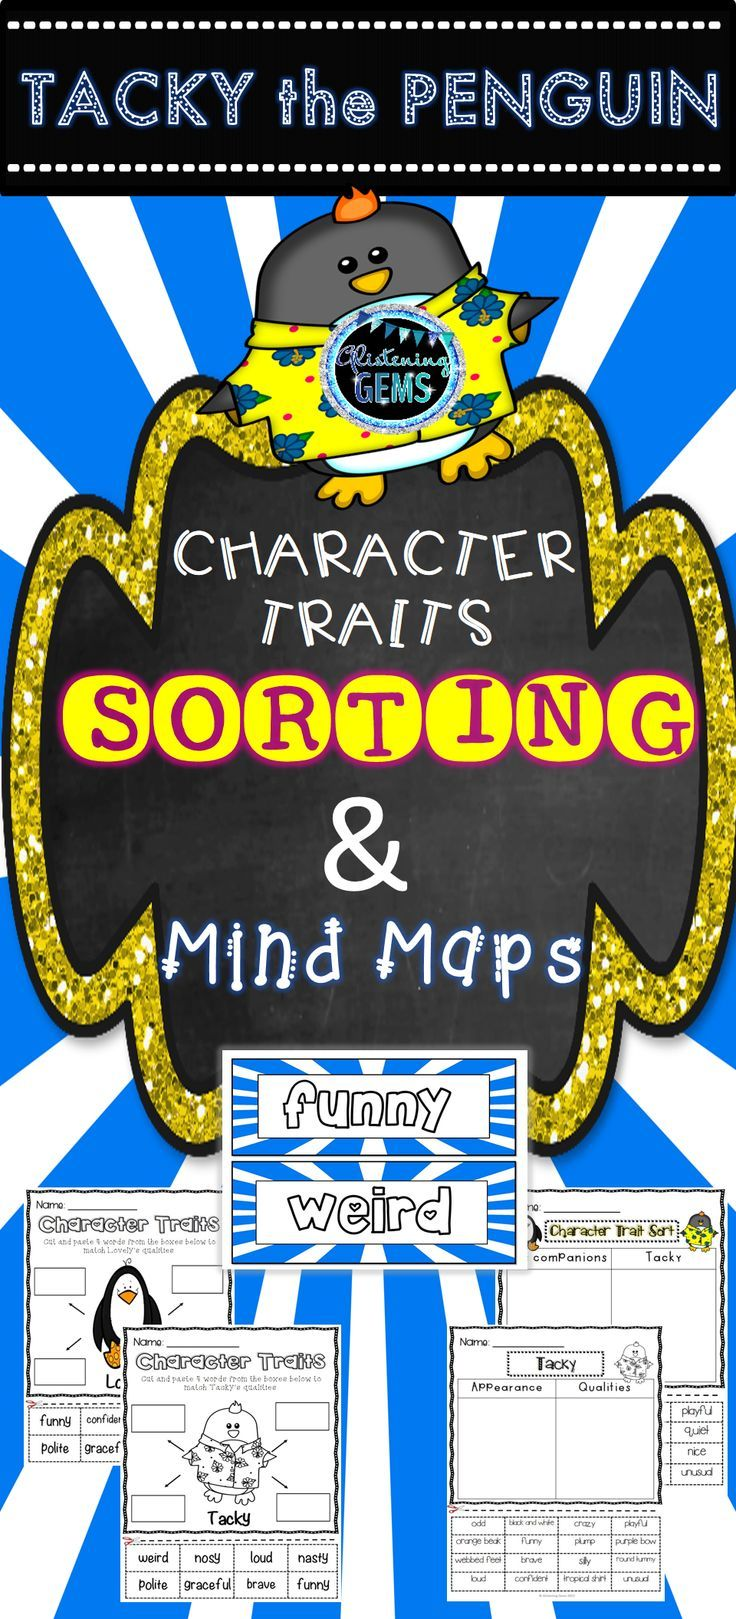 Character Traits Pack for the popular story 'Tacky the Penguin' by Helen Lester. Included in this pack is bright and colorful cut and paste sorting, mind map activities, word wall cards and anchor charts (answer sheets) for students to consolidate their understanding of character traits.